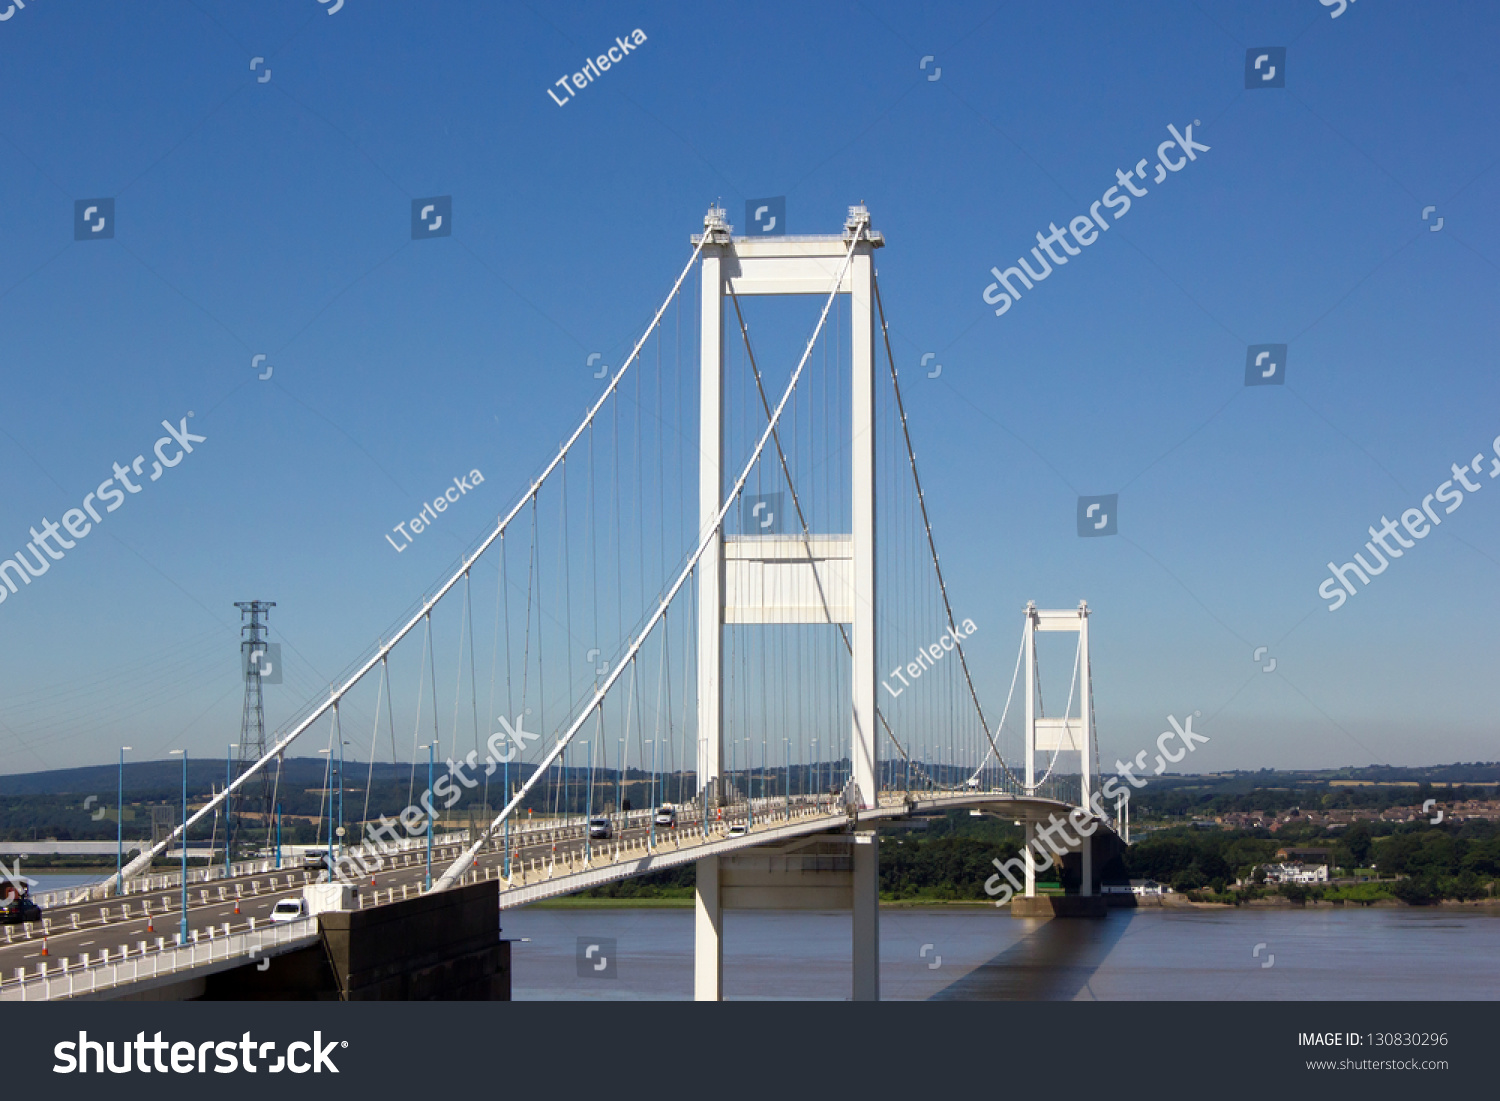 The Severn Bridge One Of Famous Motorway Suspension Bridges In England Spanning River And Wye